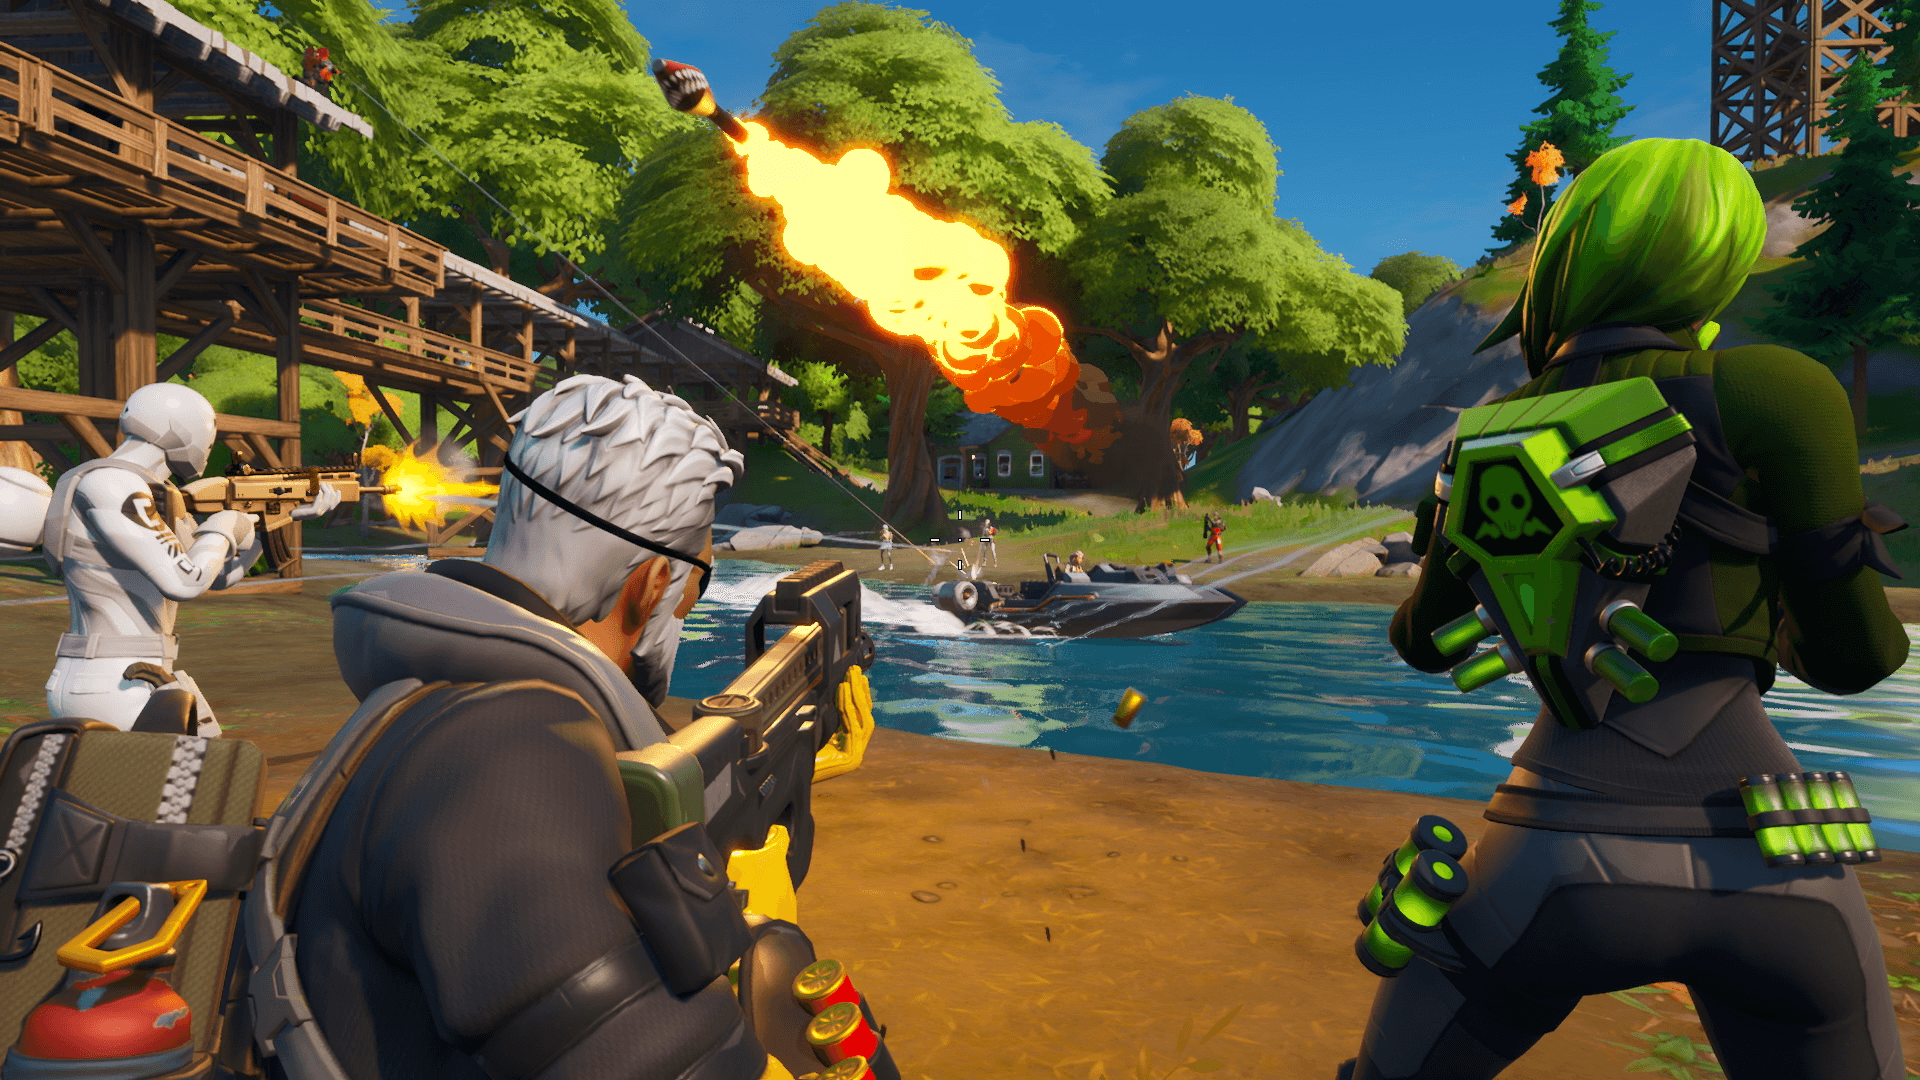 Fortnite launches 'Chapter 2' after Call of Duty challenge